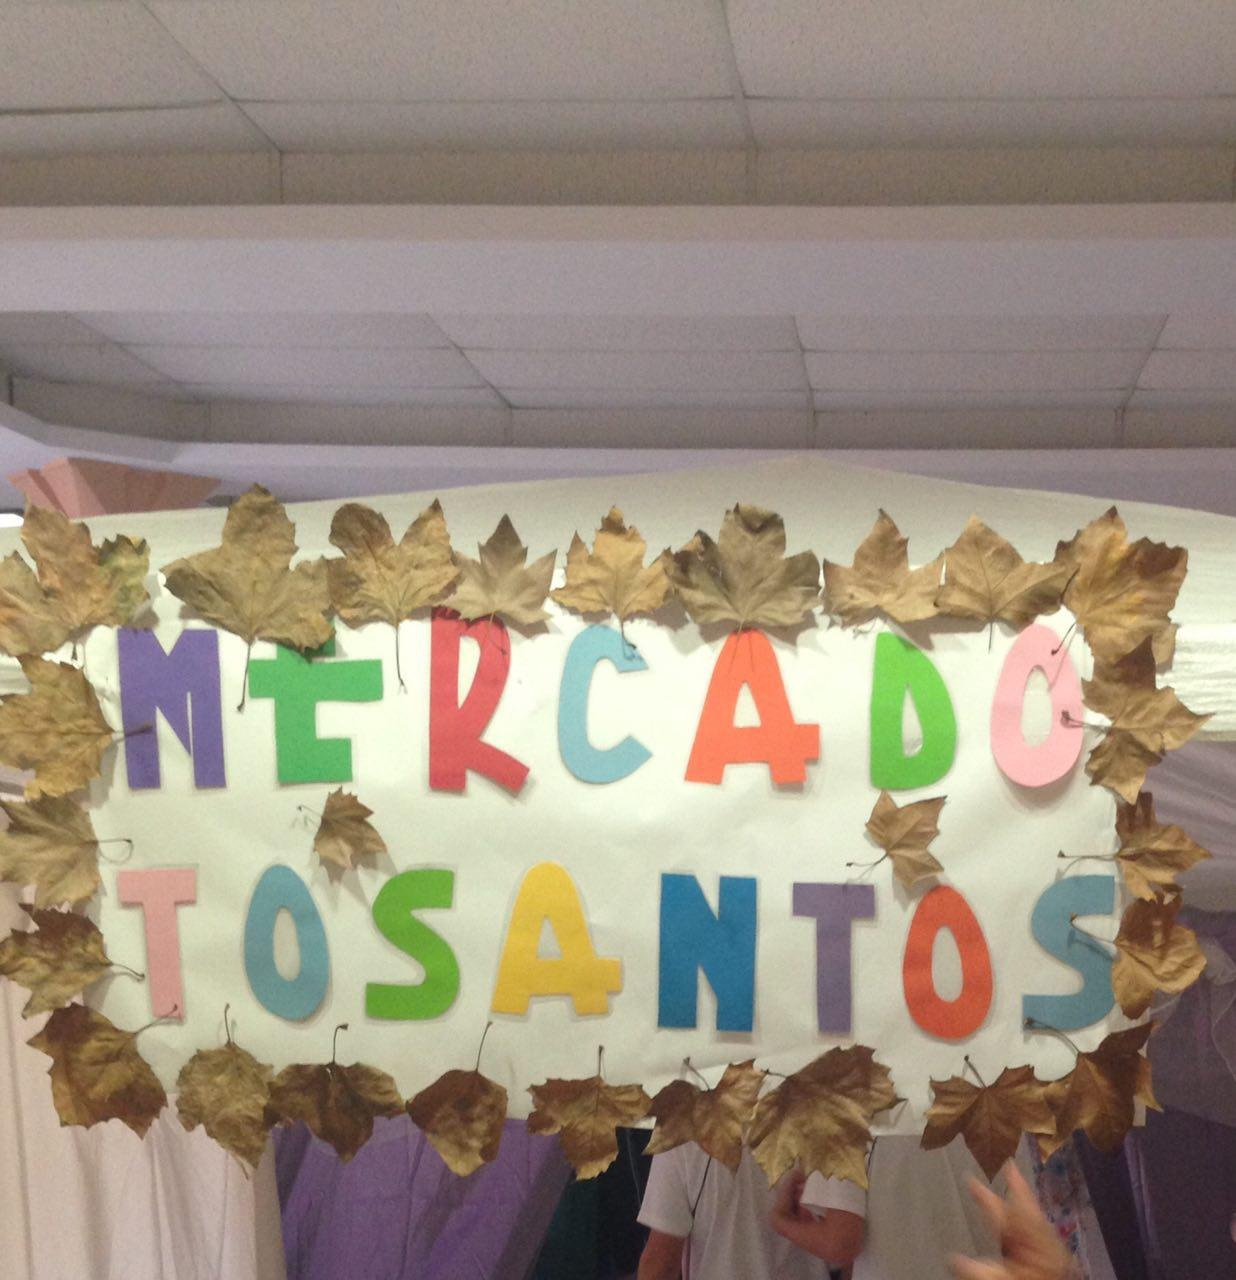 tosantoseso (3)